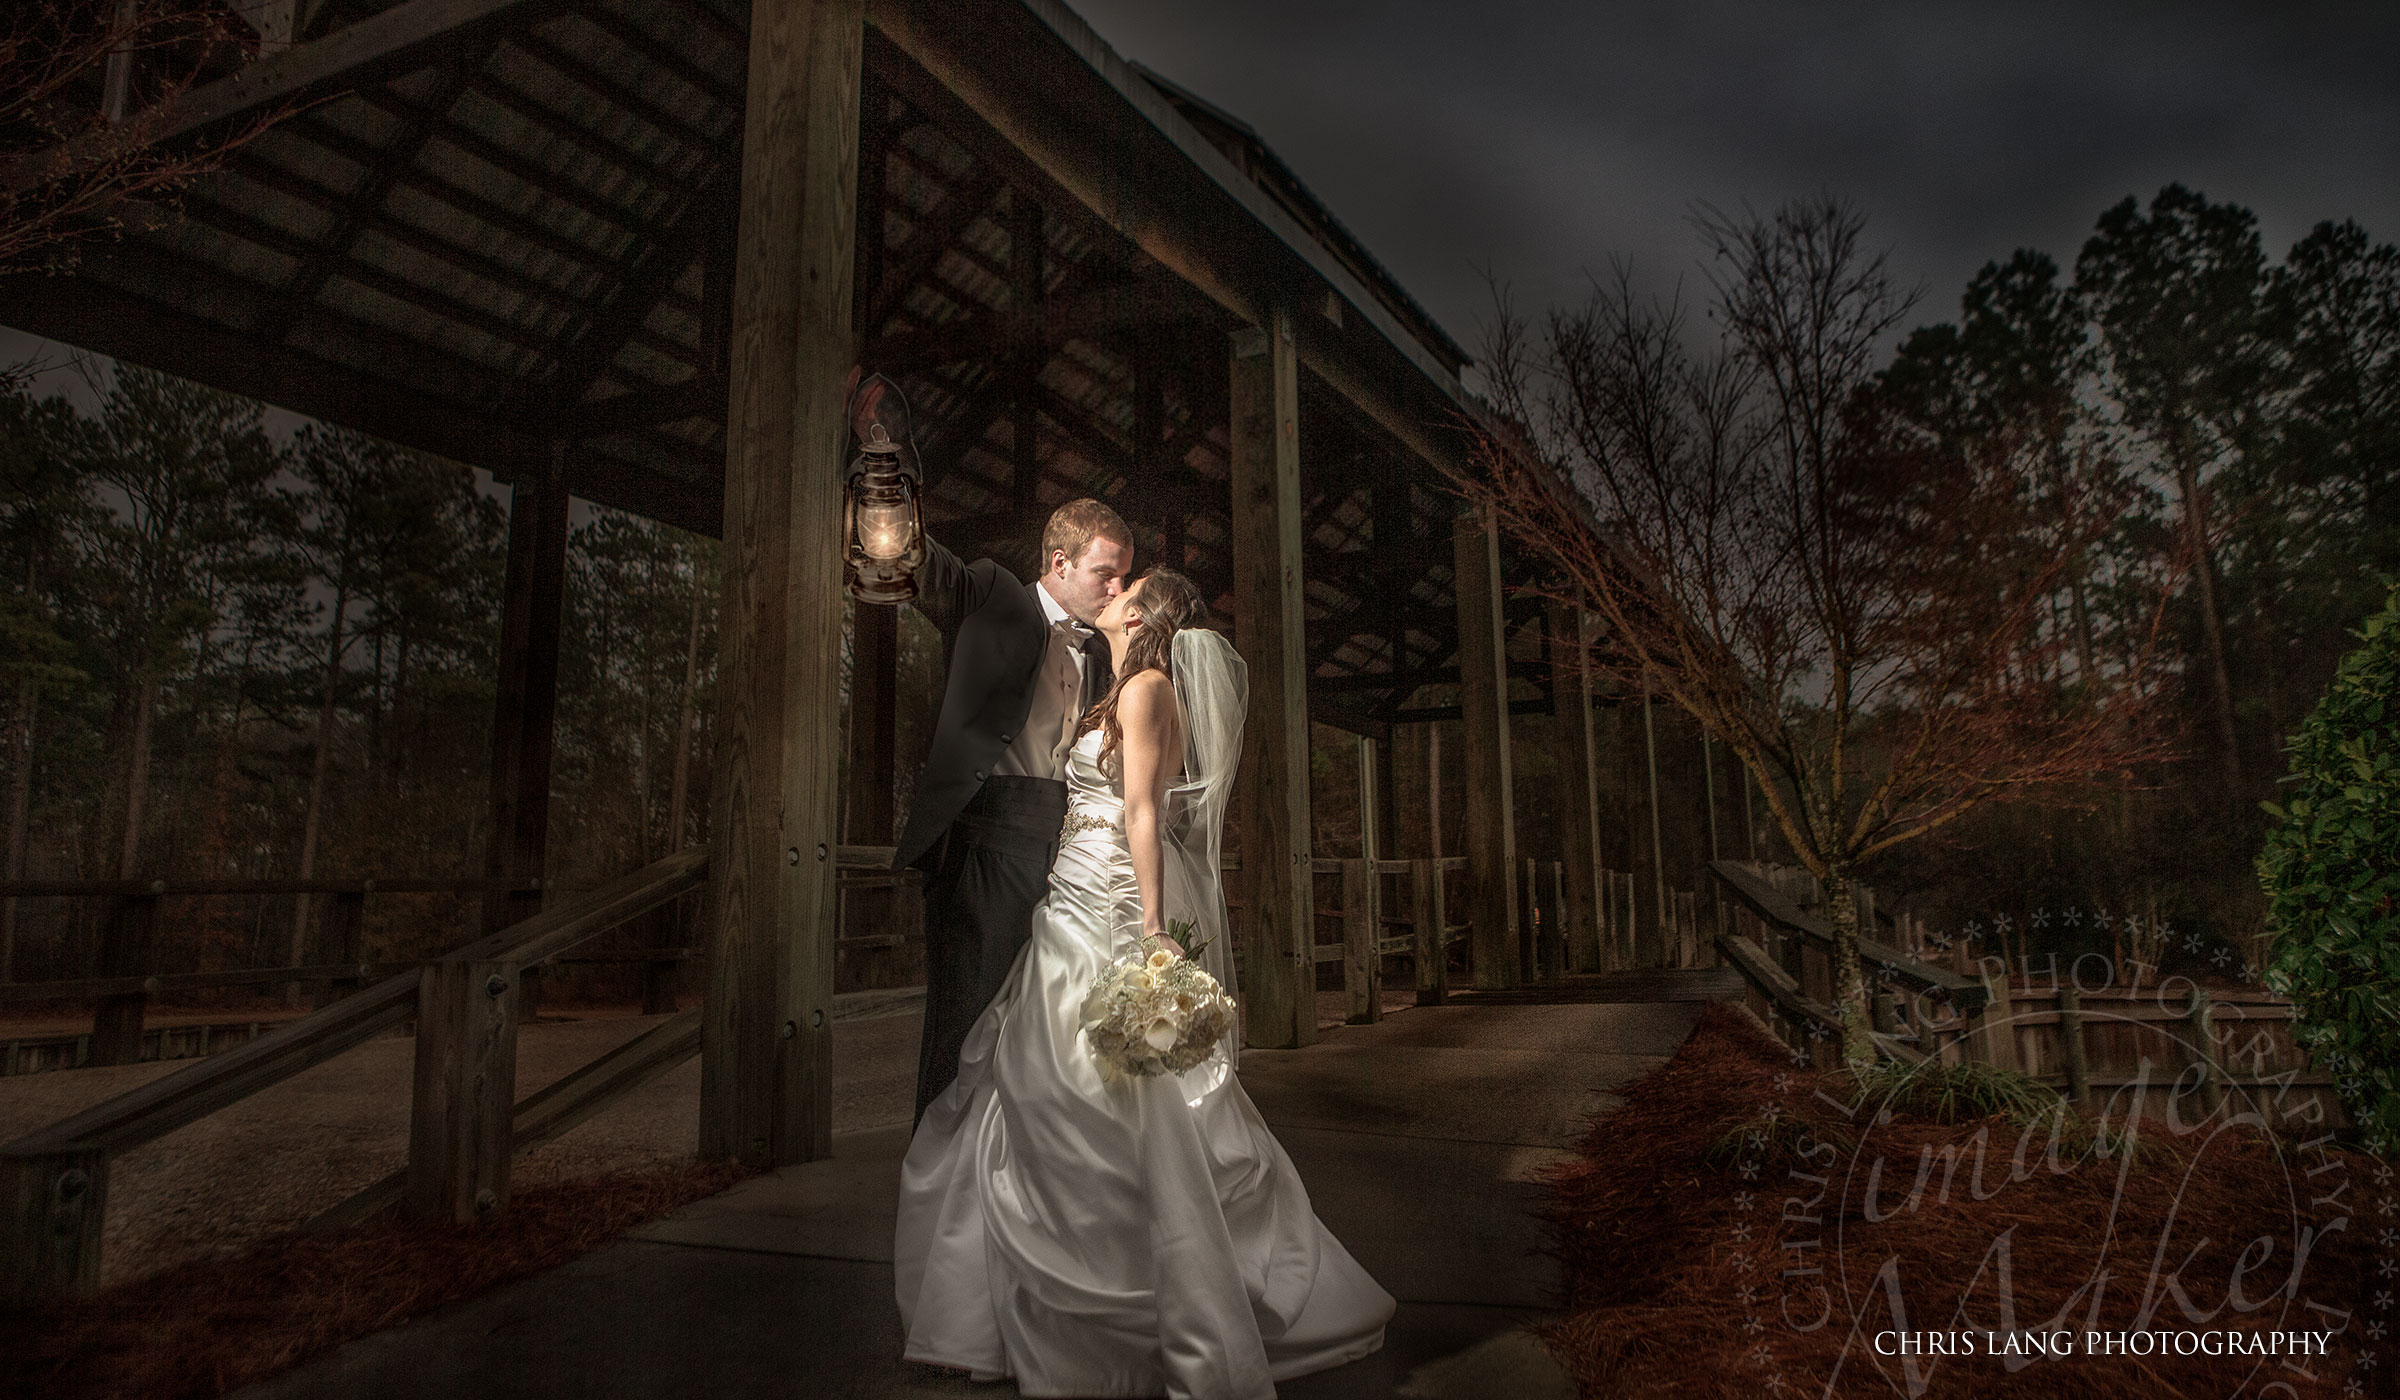 Creative & Fine Art Wedding Photography | Signature Wedding Styles ...